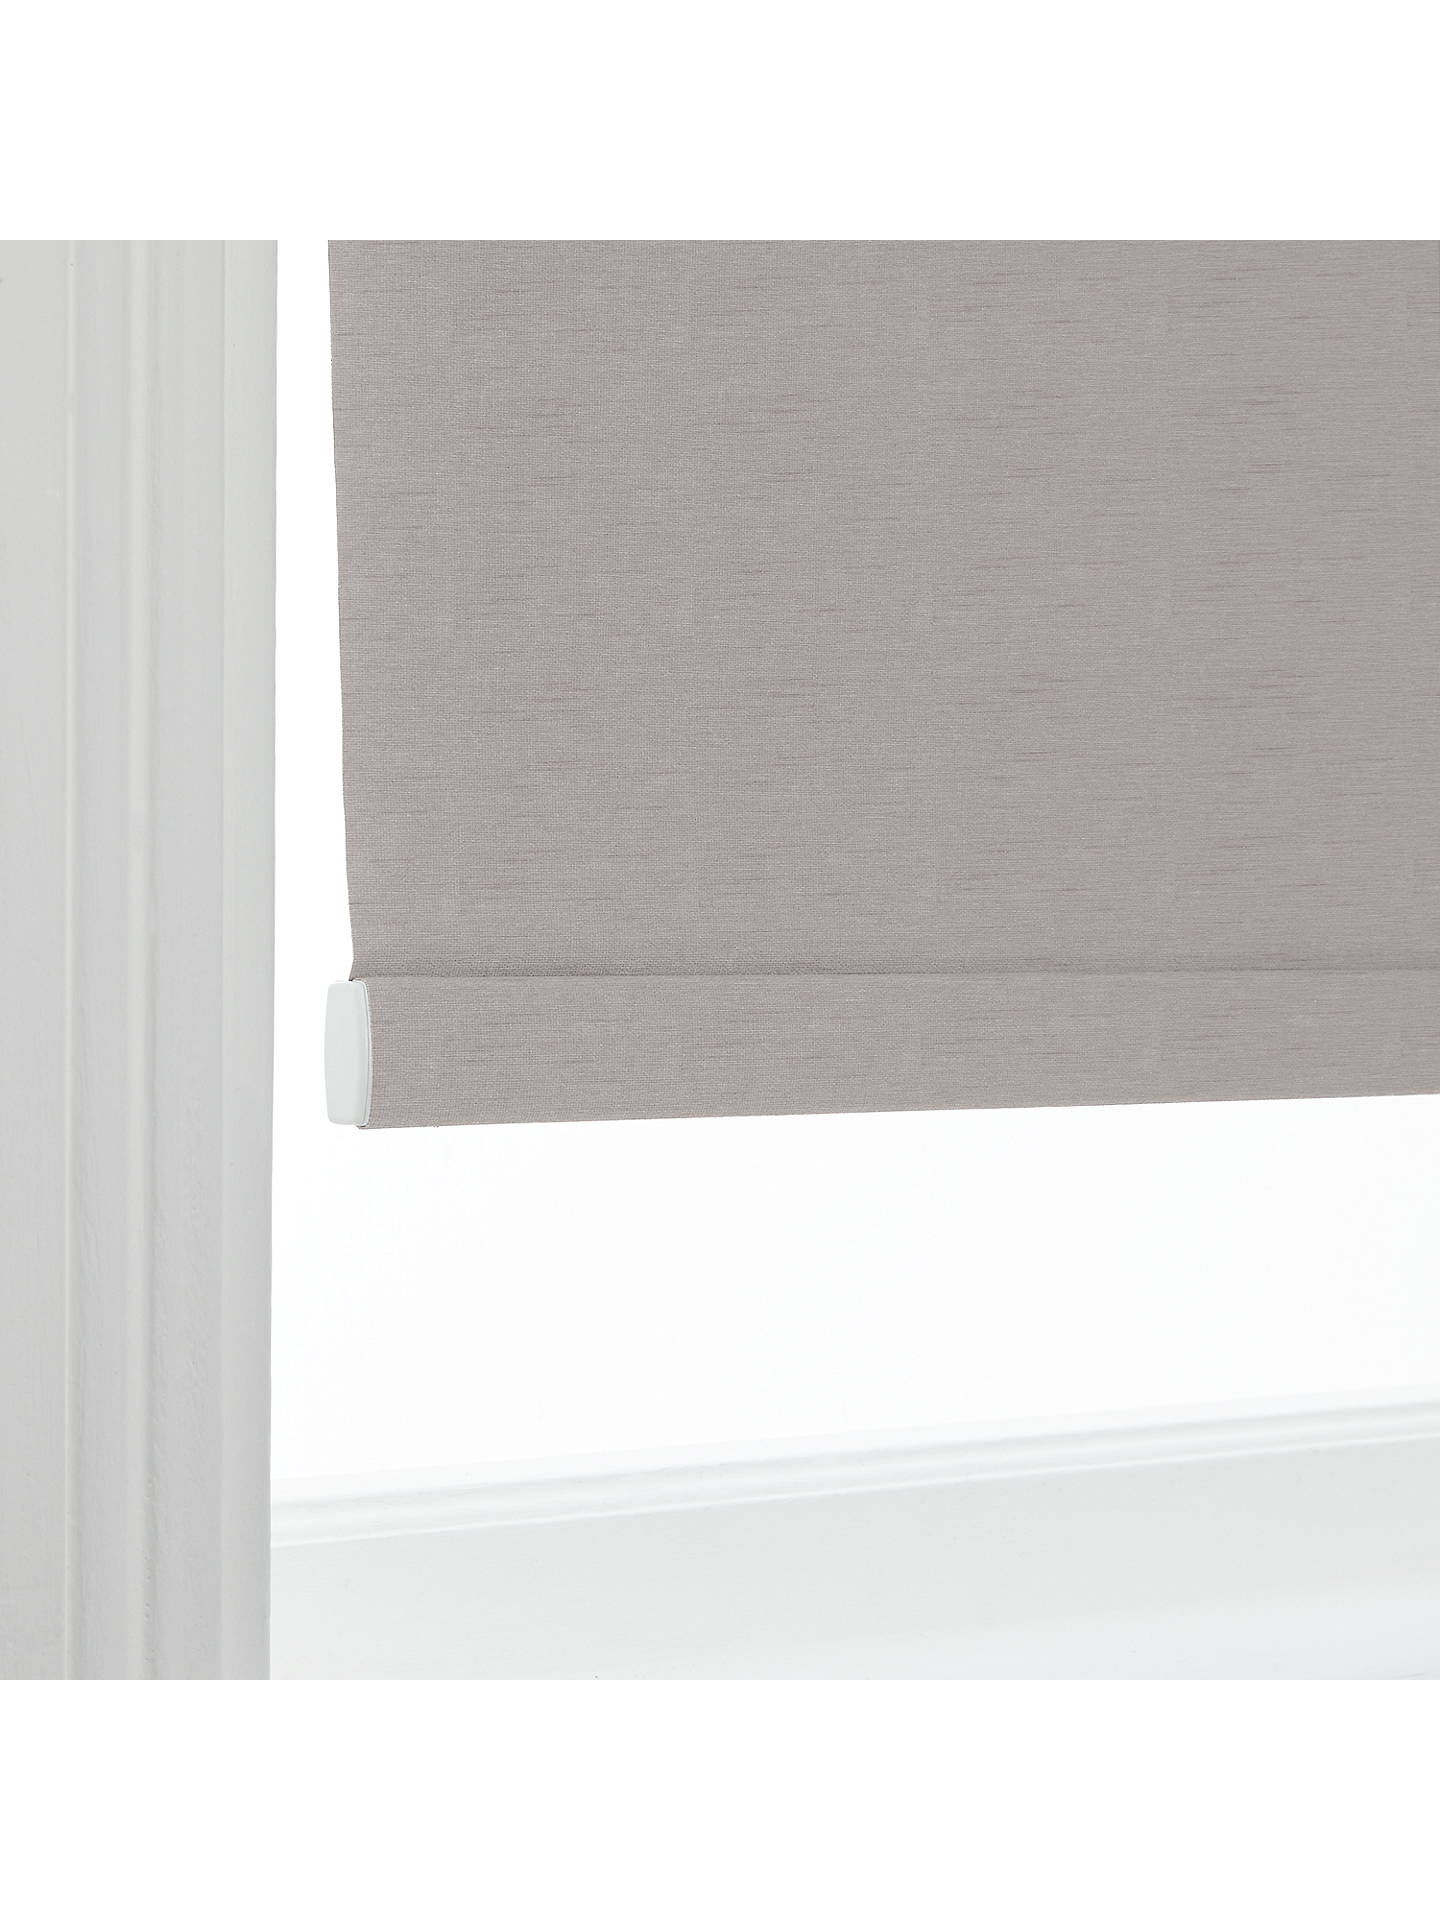 Buy John Lewis & Partners Estella Made to Measure Blackout Roller Blind, Alava Online at johnlewis.com